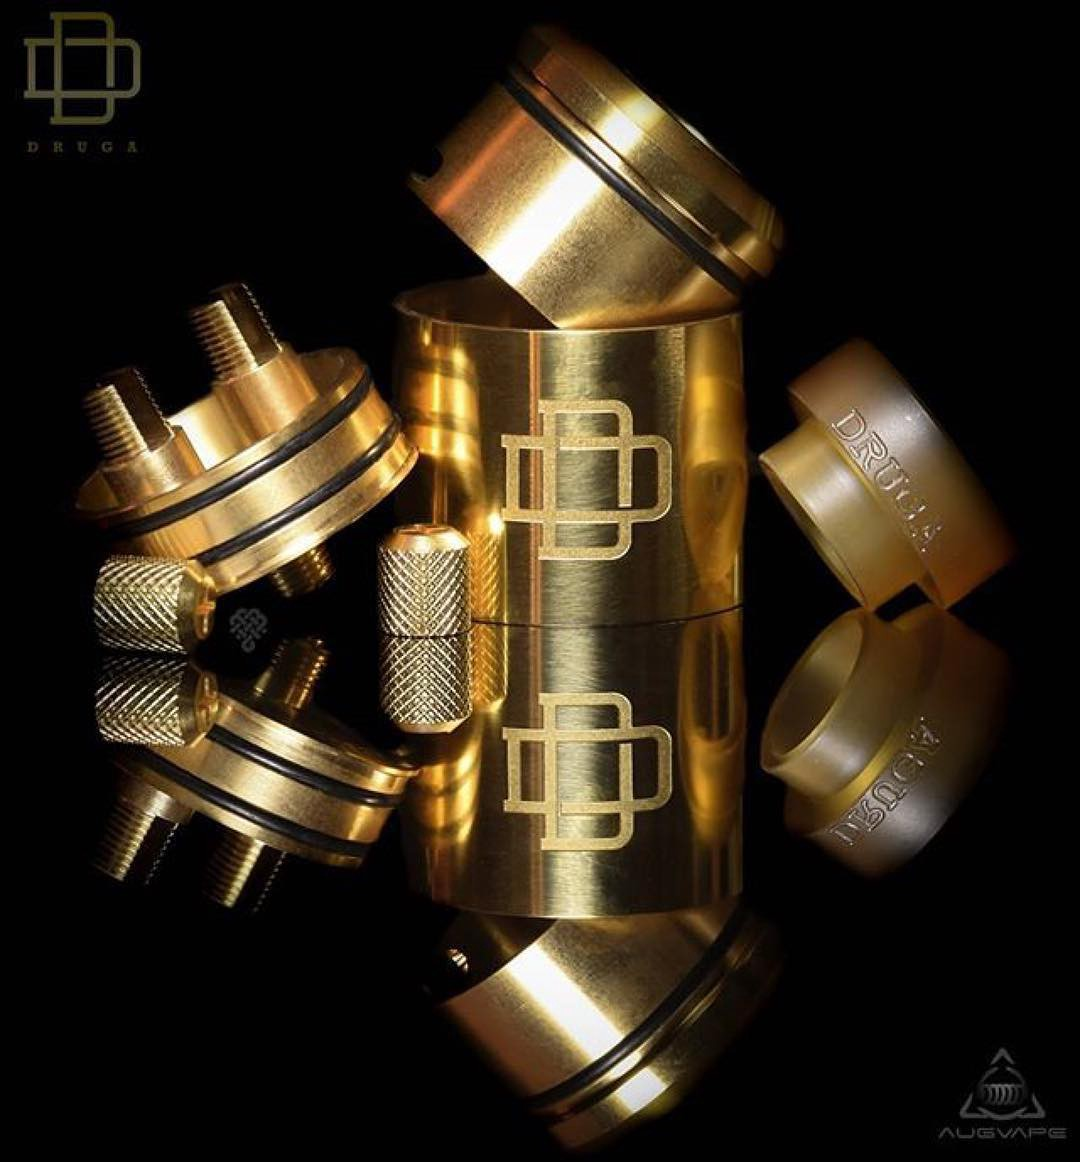 Druga RDA Atomizer Tank 24mm features with Clamp Snag System